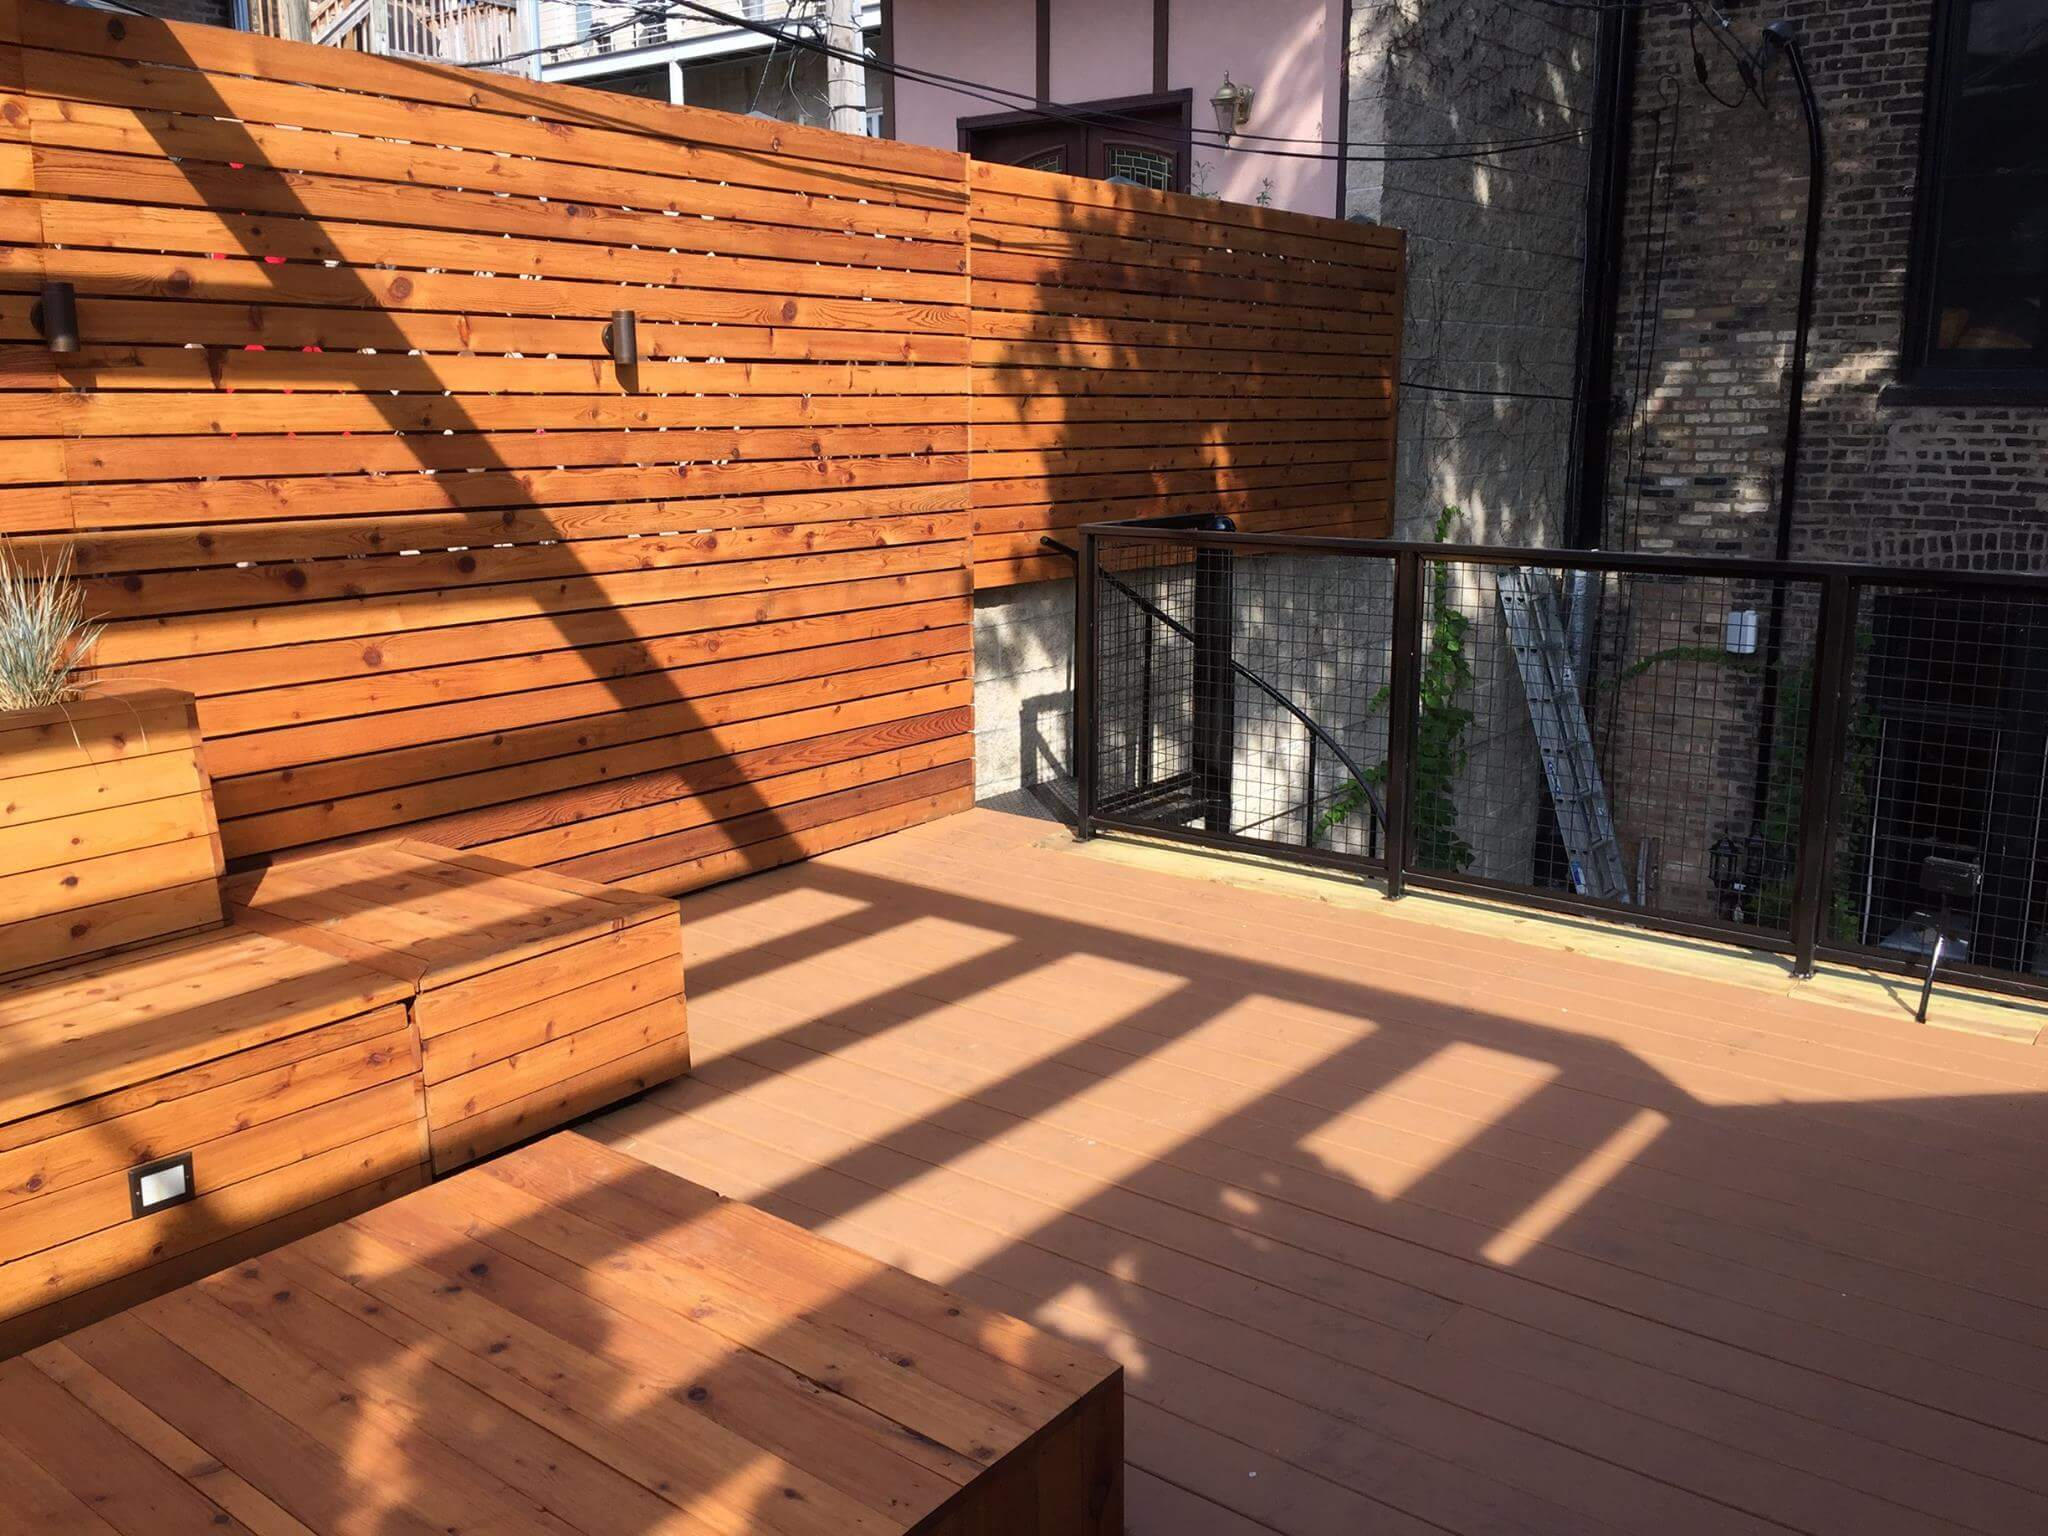 Roof Deck With Seating And Built In Planters, Chicago